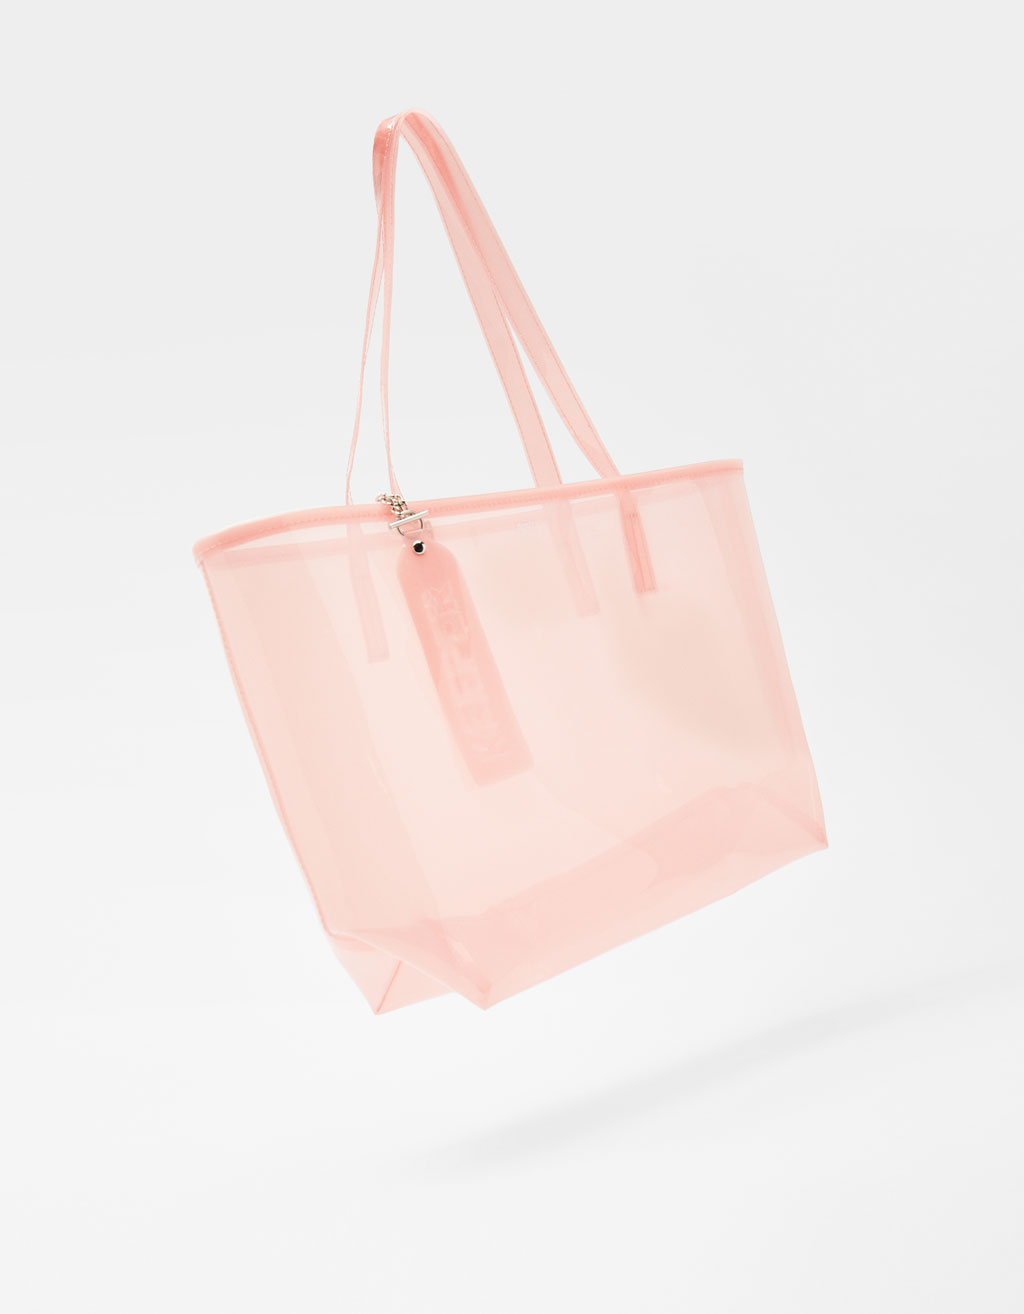 Transparent vinyl handbag